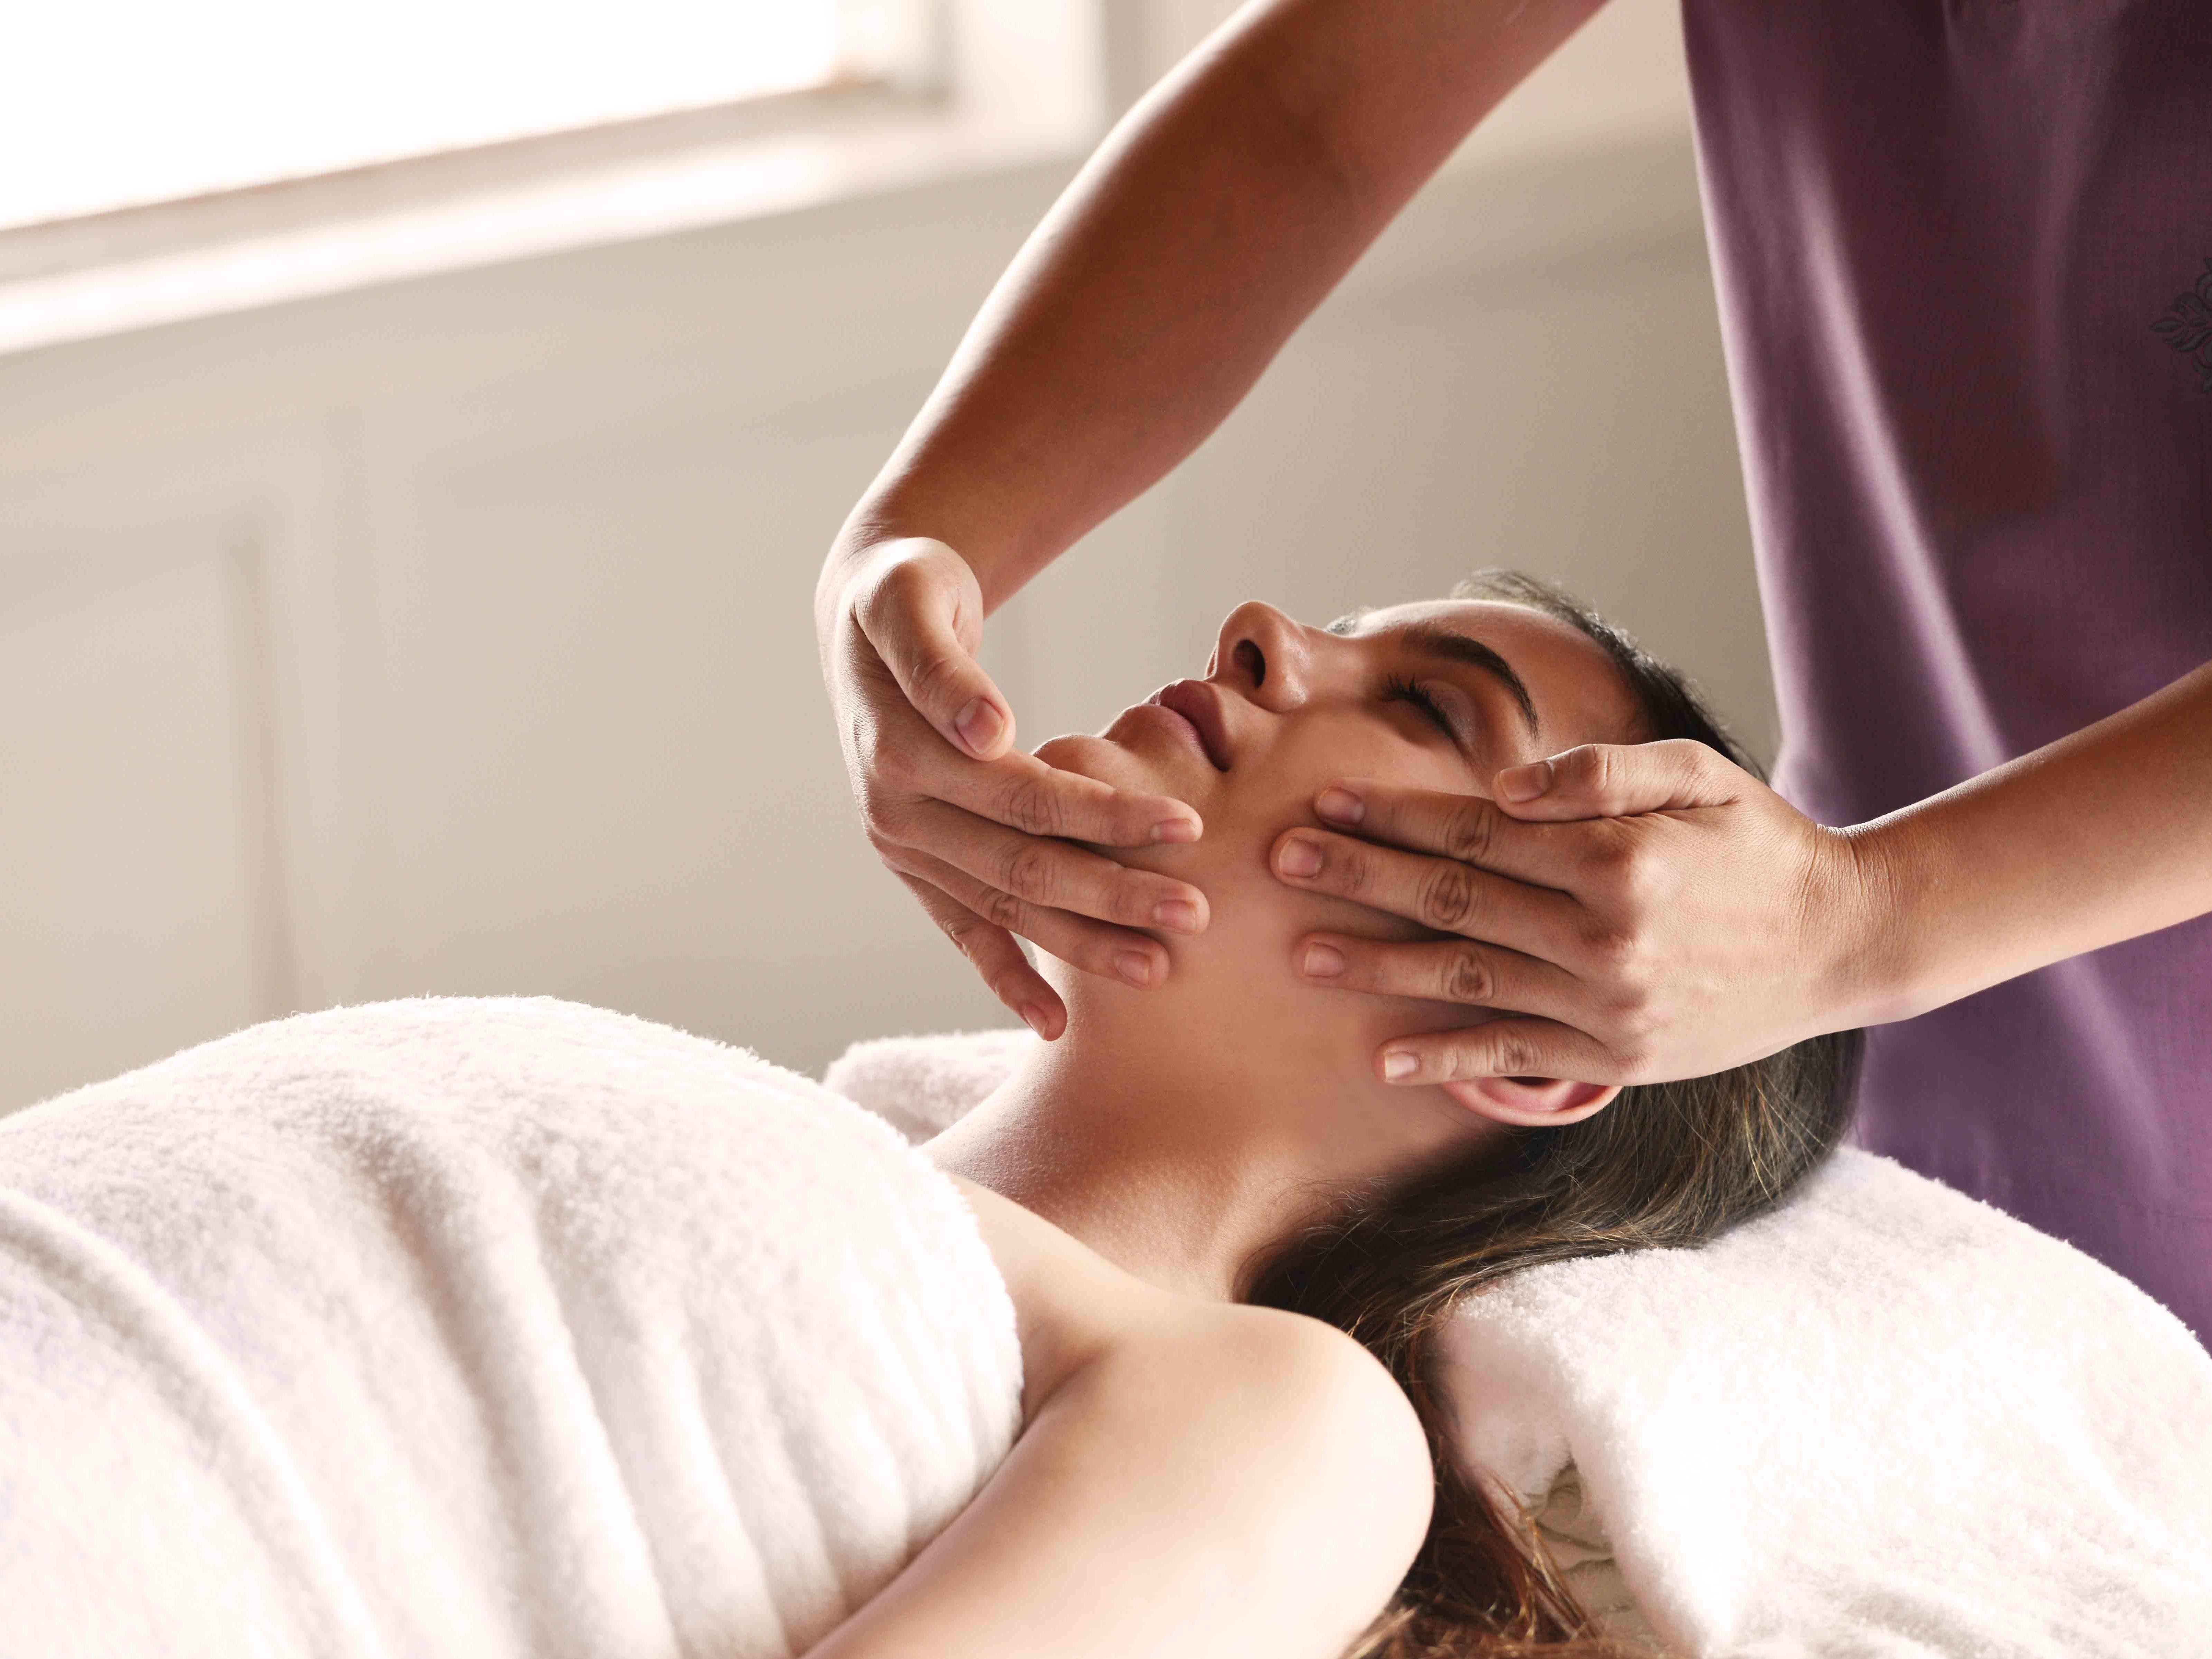 female guest undergoing one of the treatments you can expect at Amatara Wellness Resort